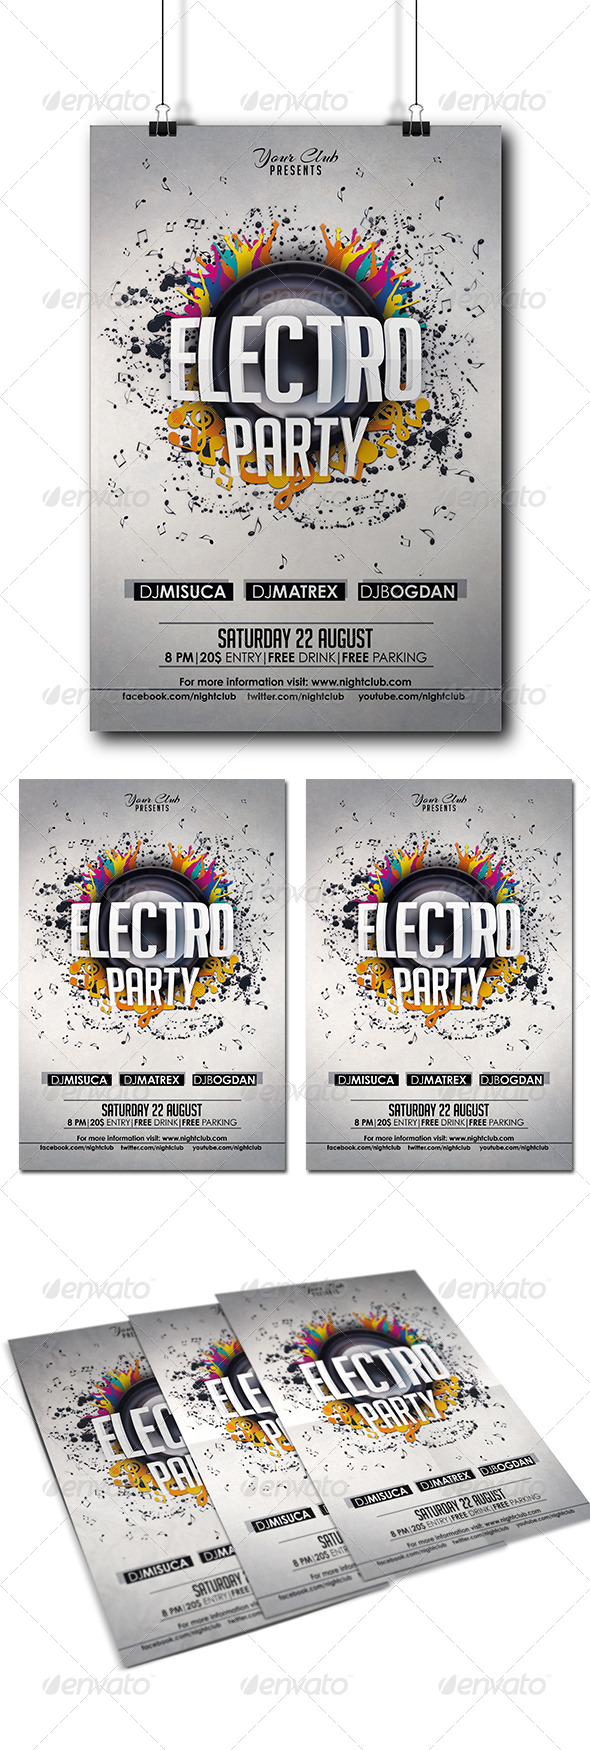 GraphicRiver Electro Party Flyer 8217518